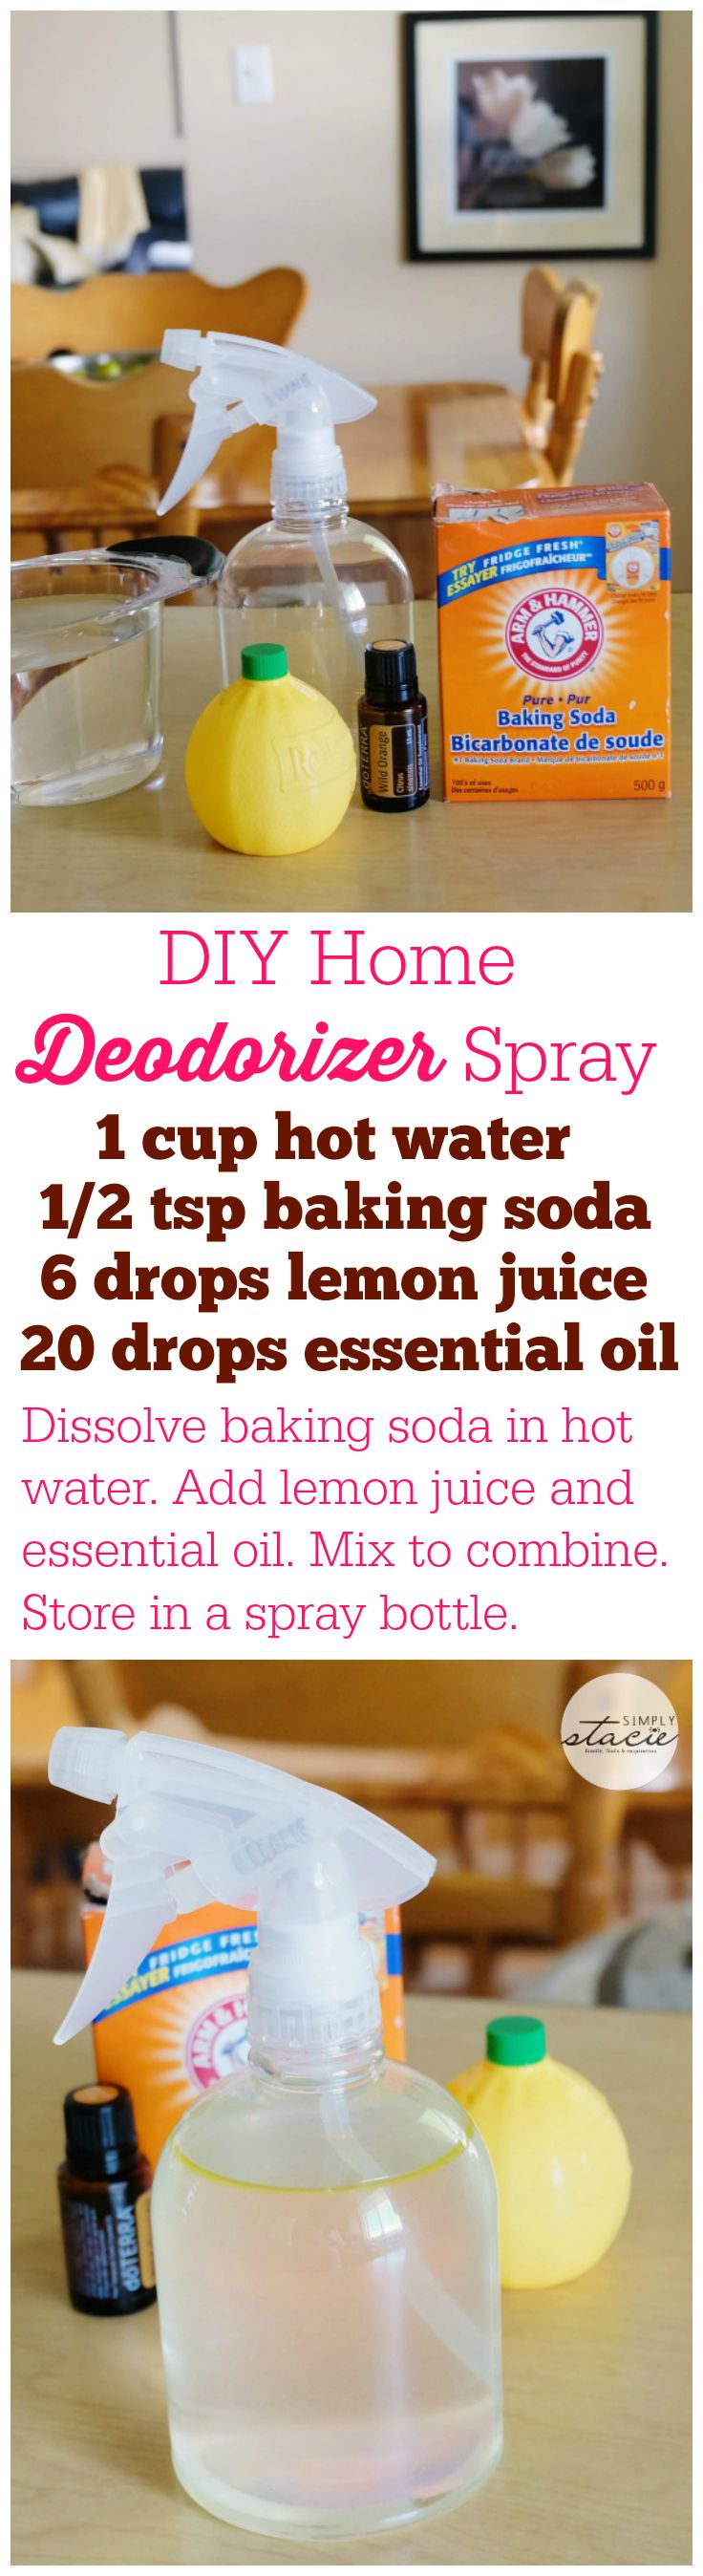 Uncategorized Room Deodorizer Homemade 25 unique deodorize house ideas on pinterest air freshener diy home deodorizer spray